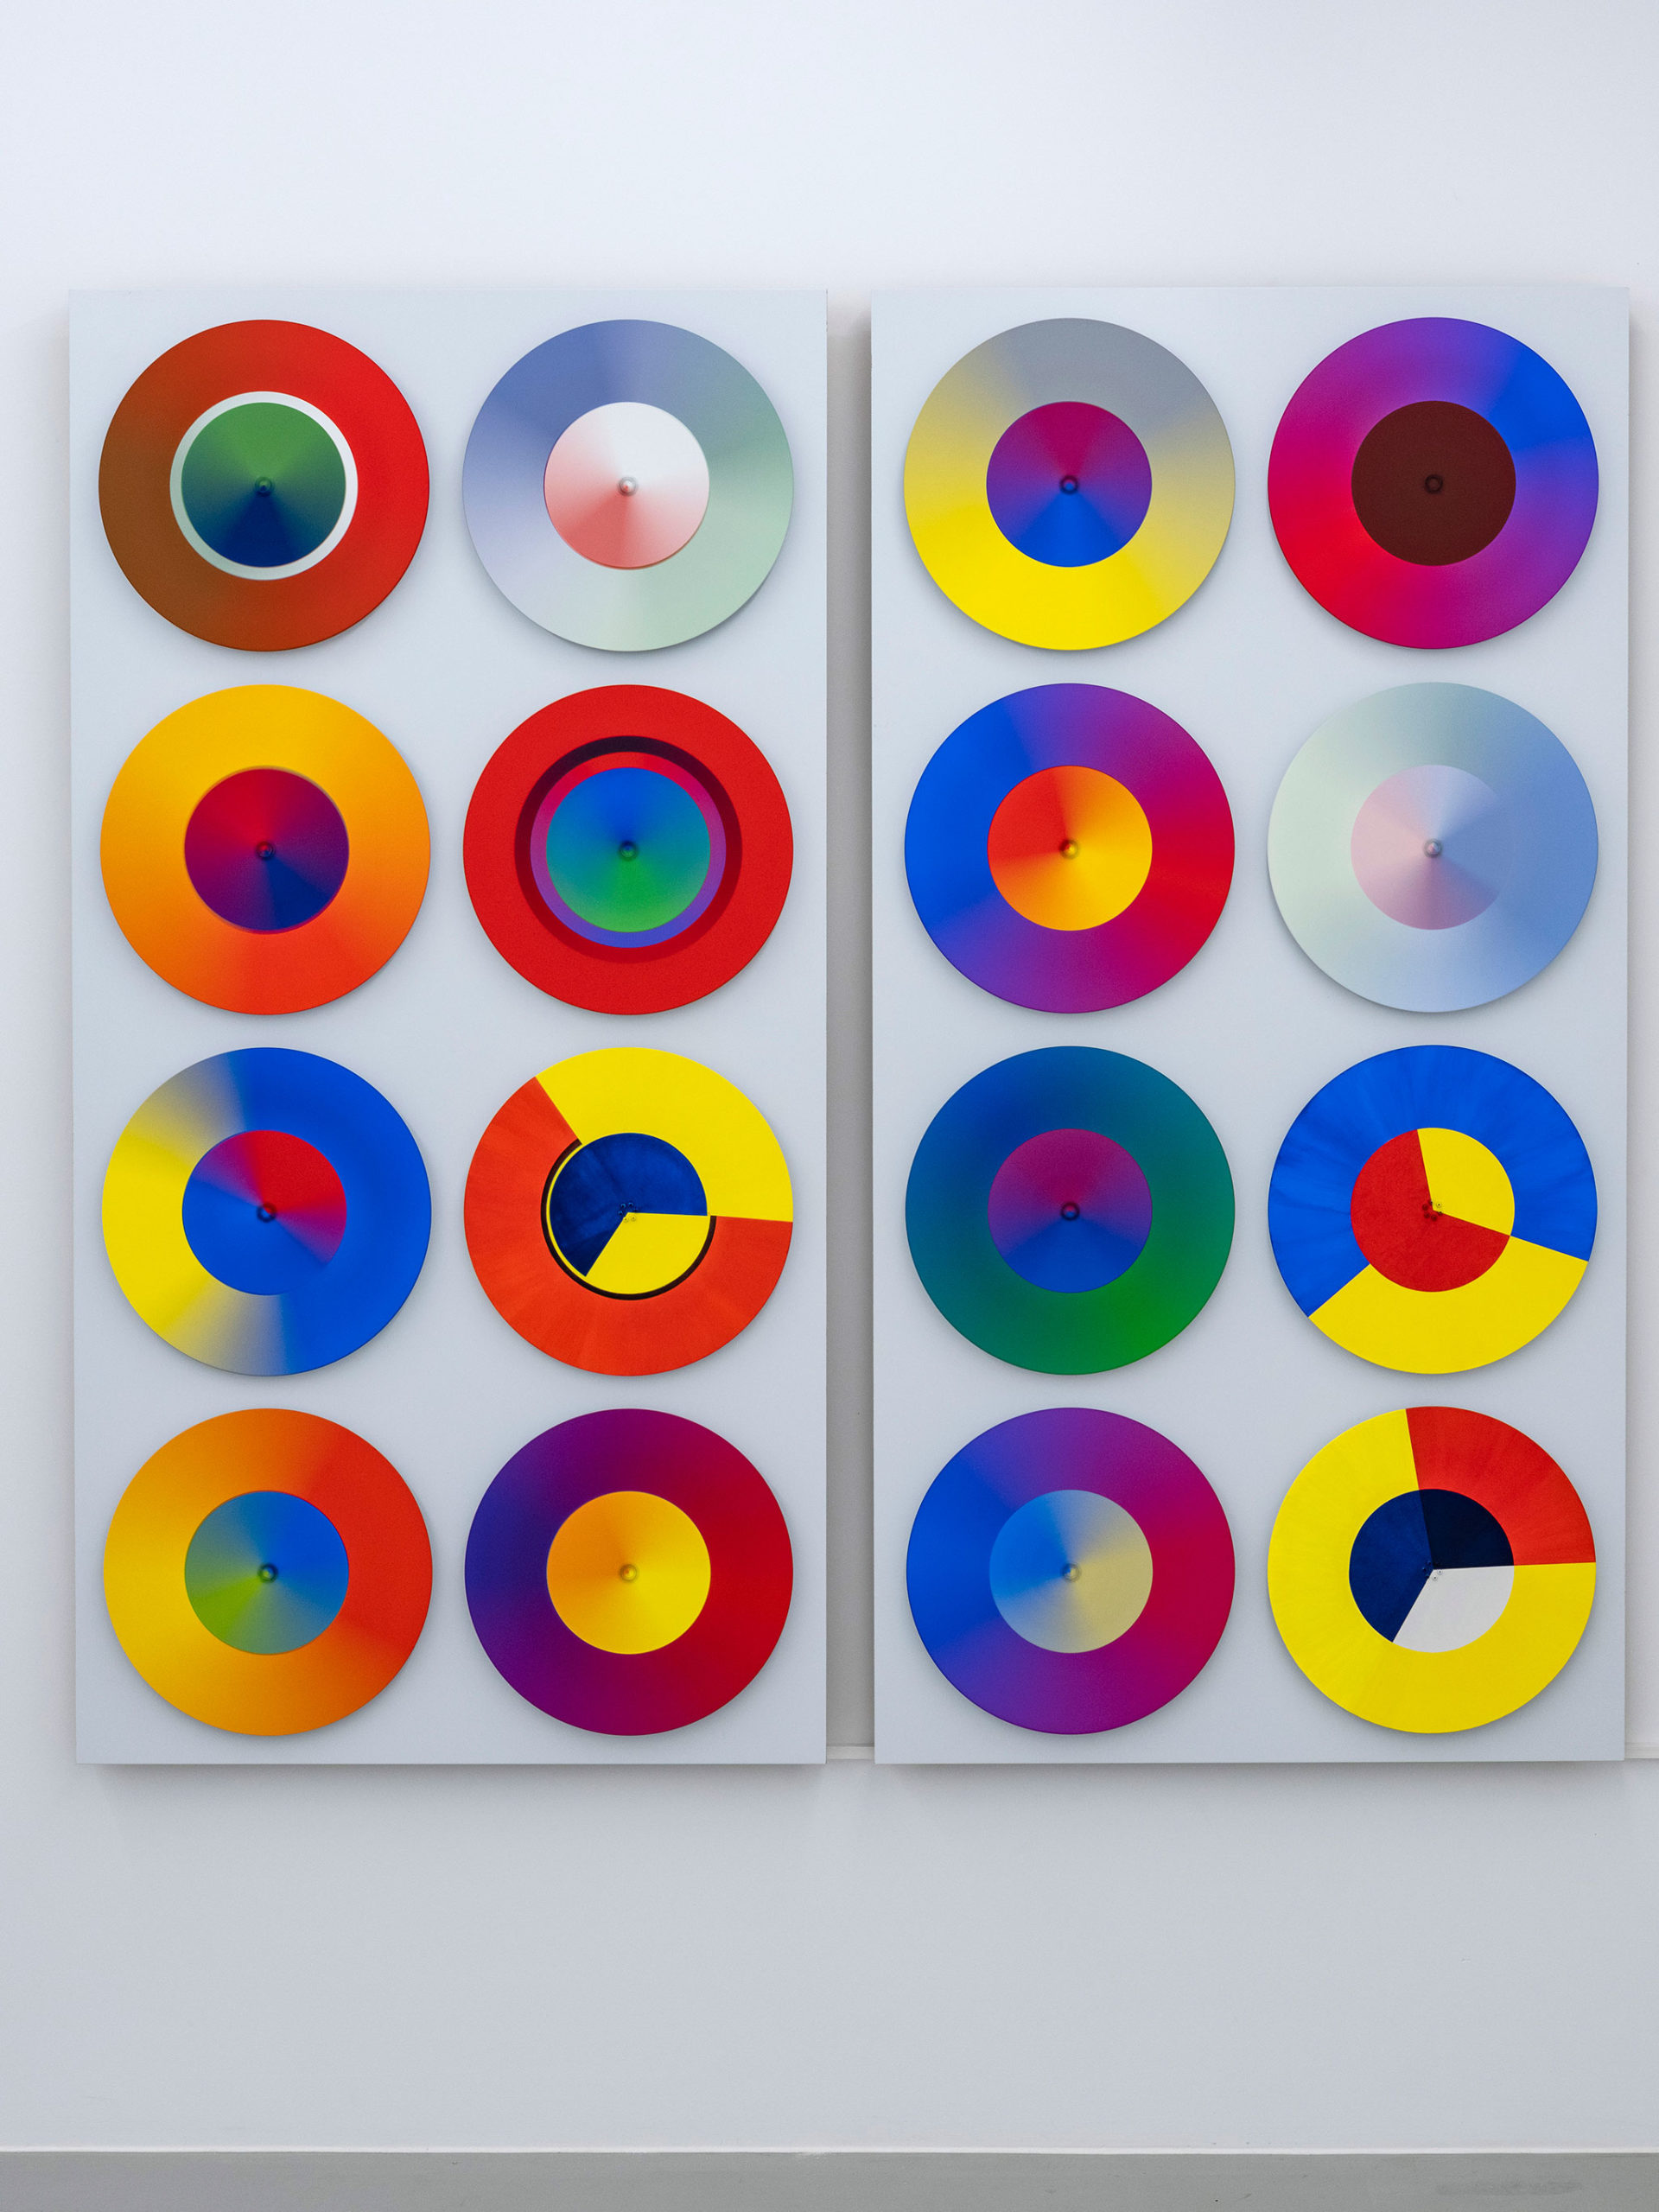 Mama Ocllo is a large kinetic painting of 16 spinning disks made by Madeleine Kelly and shown at Milani Gallery, printed in artist profile magazine